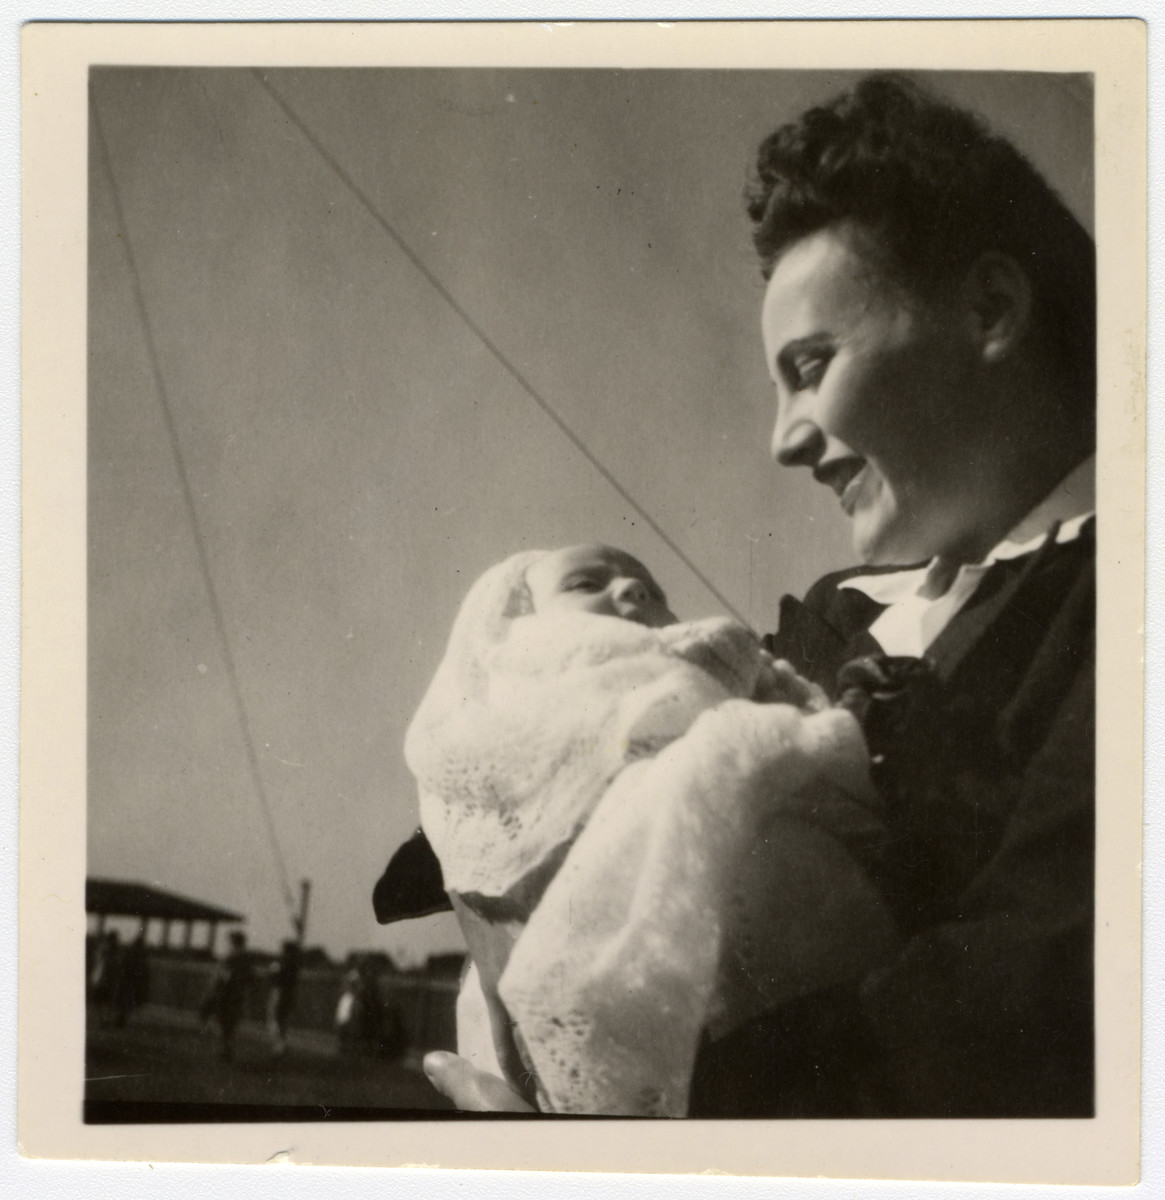 Jewish refugee Lily Haber holds her newborn daughter Ruth in Nyasaland.